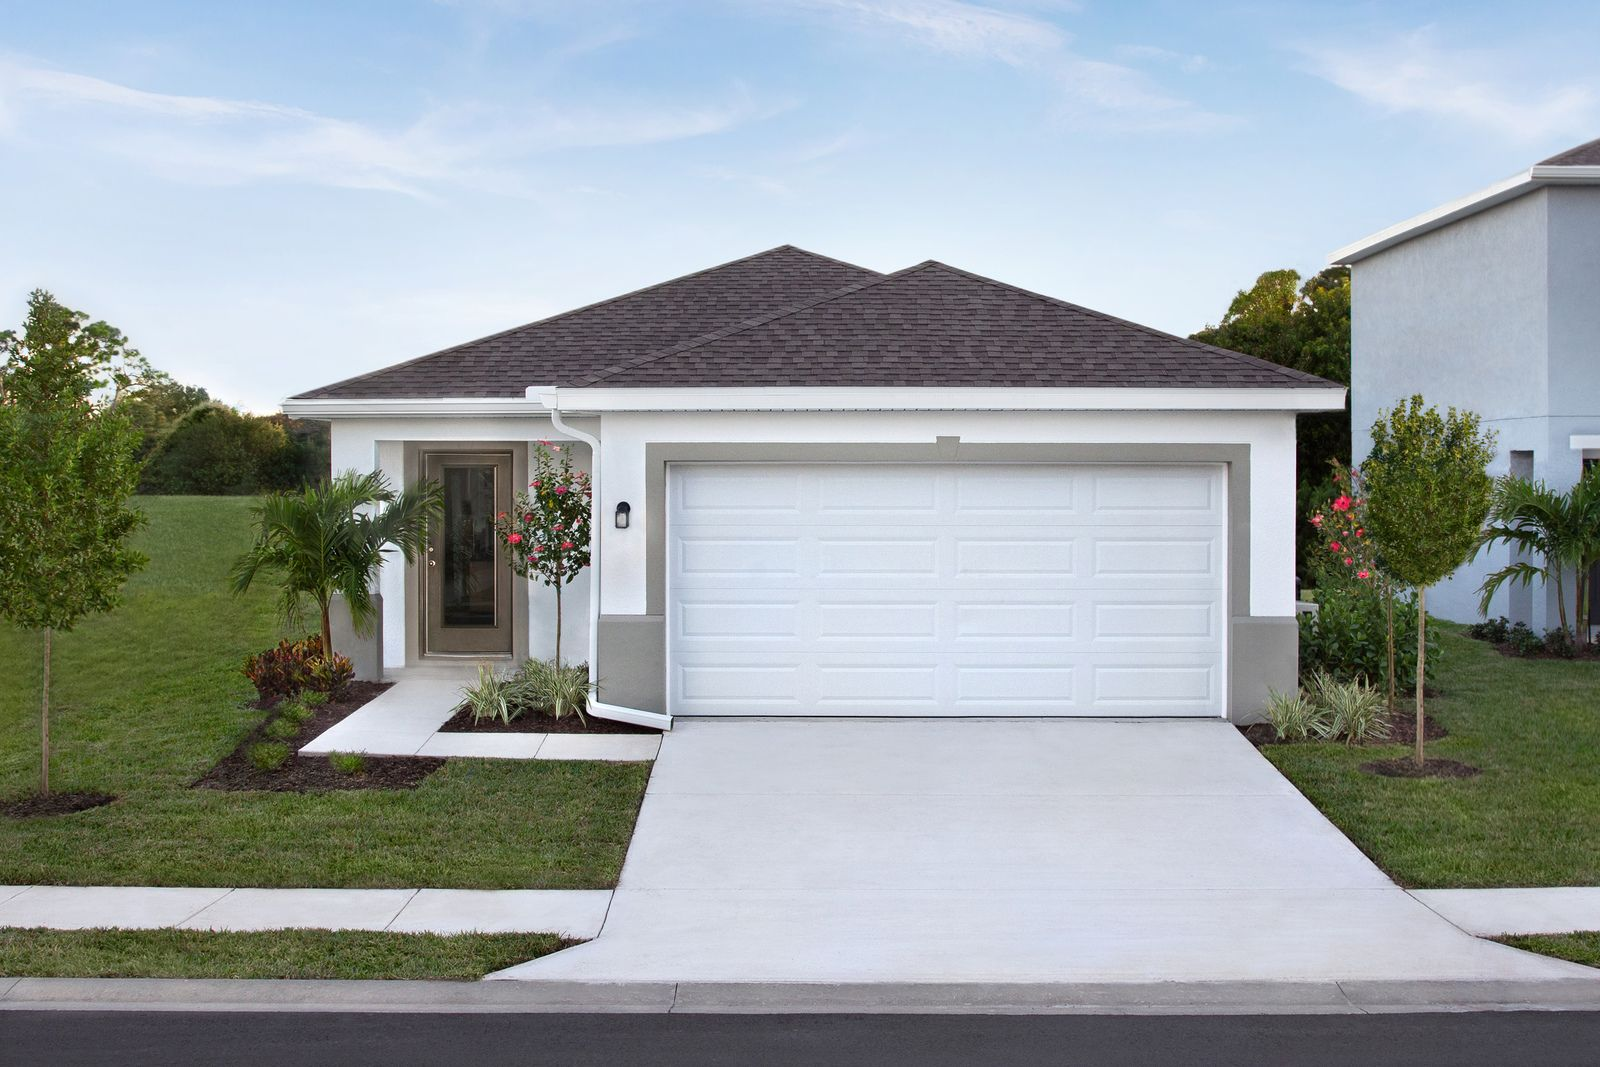 SIMPLE AND AFFORDABLE HOMES IN ST. LUCIE COUNTY FROM THE LOW $200S:At an affordable value, choose between our one- and two-story floorplans and picture yourself calling Avalon Crossing home. No CDD. Low HOA.Join our VIP List to learn more!